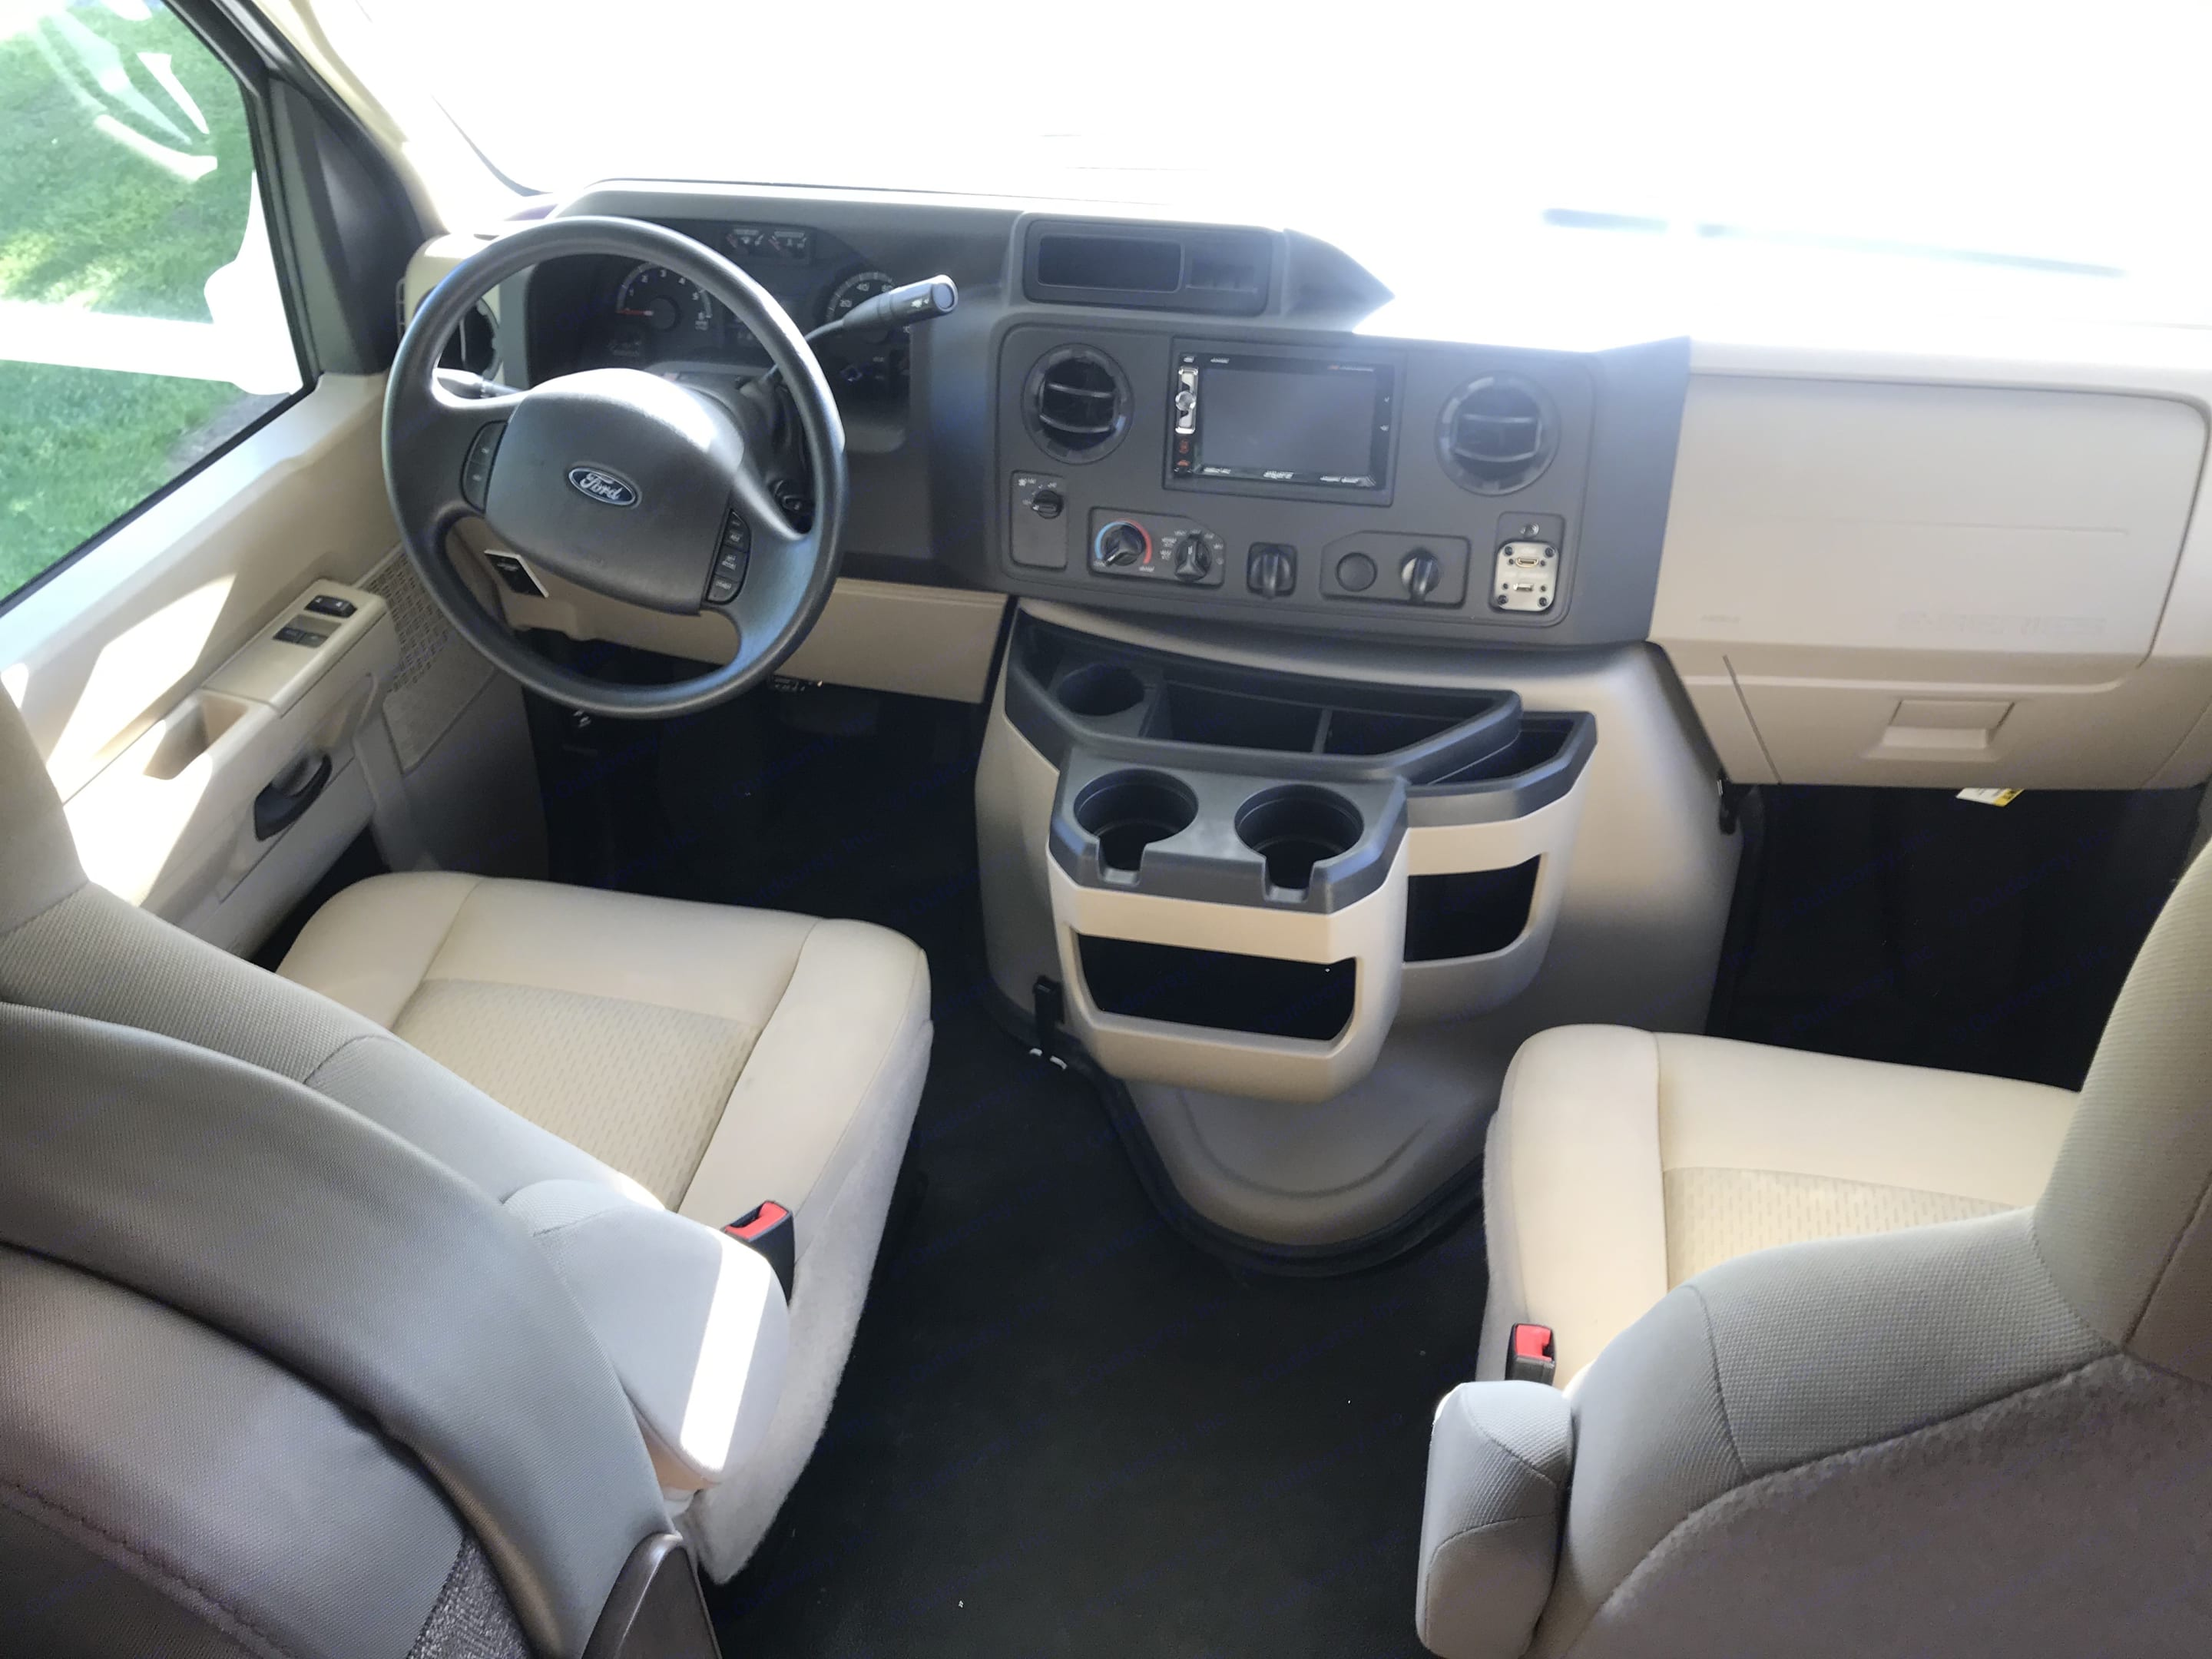 Comfortable cabin for both driver and passenger. Features back-up camera, cup holders, USB, Bluetooth radio, air-conditioning and ample storage for miscellaneous items.. Thor Motor Coach Four Winds 26B 2019